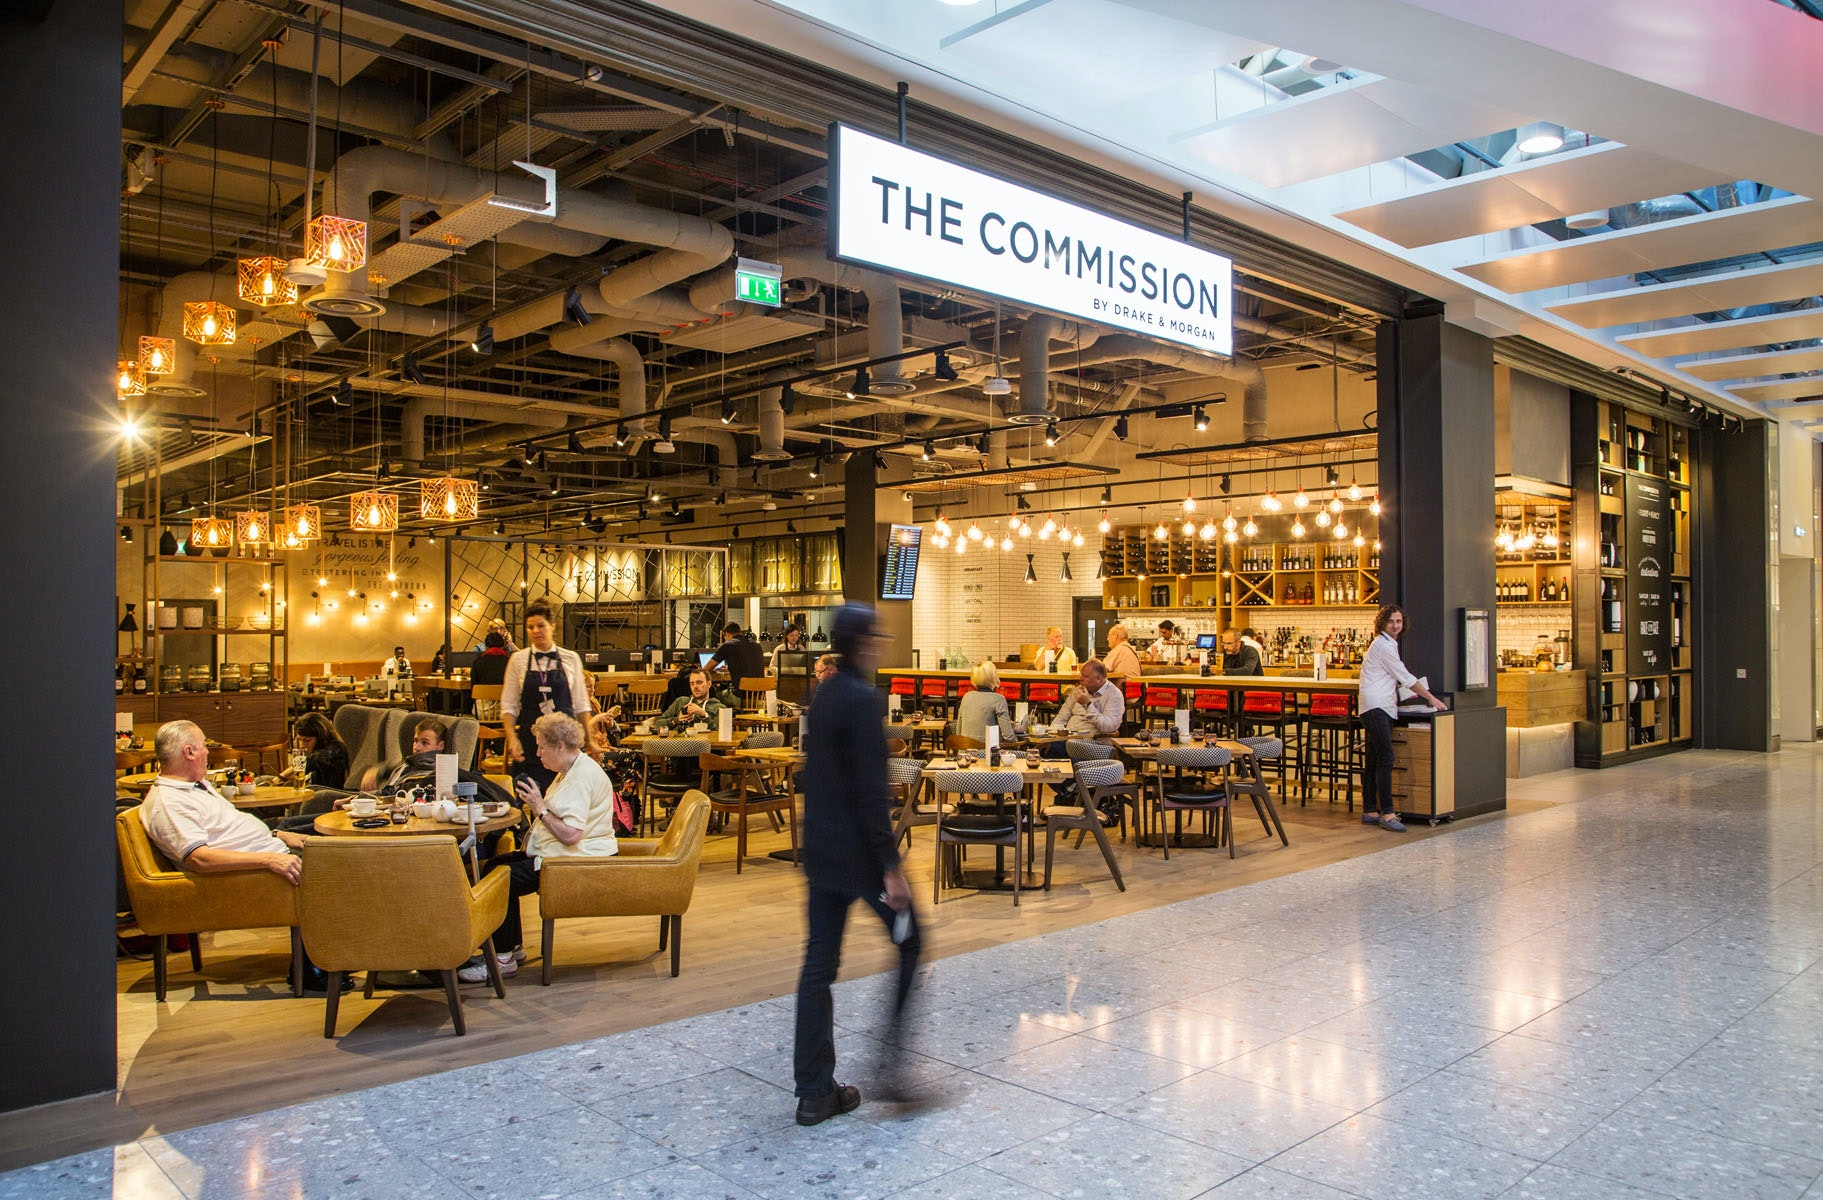 Once you pass security in Terminal 4, grab a seat at The Commission, where you can fuel up on hearty fare like burgers, fish and chips, and steaks.